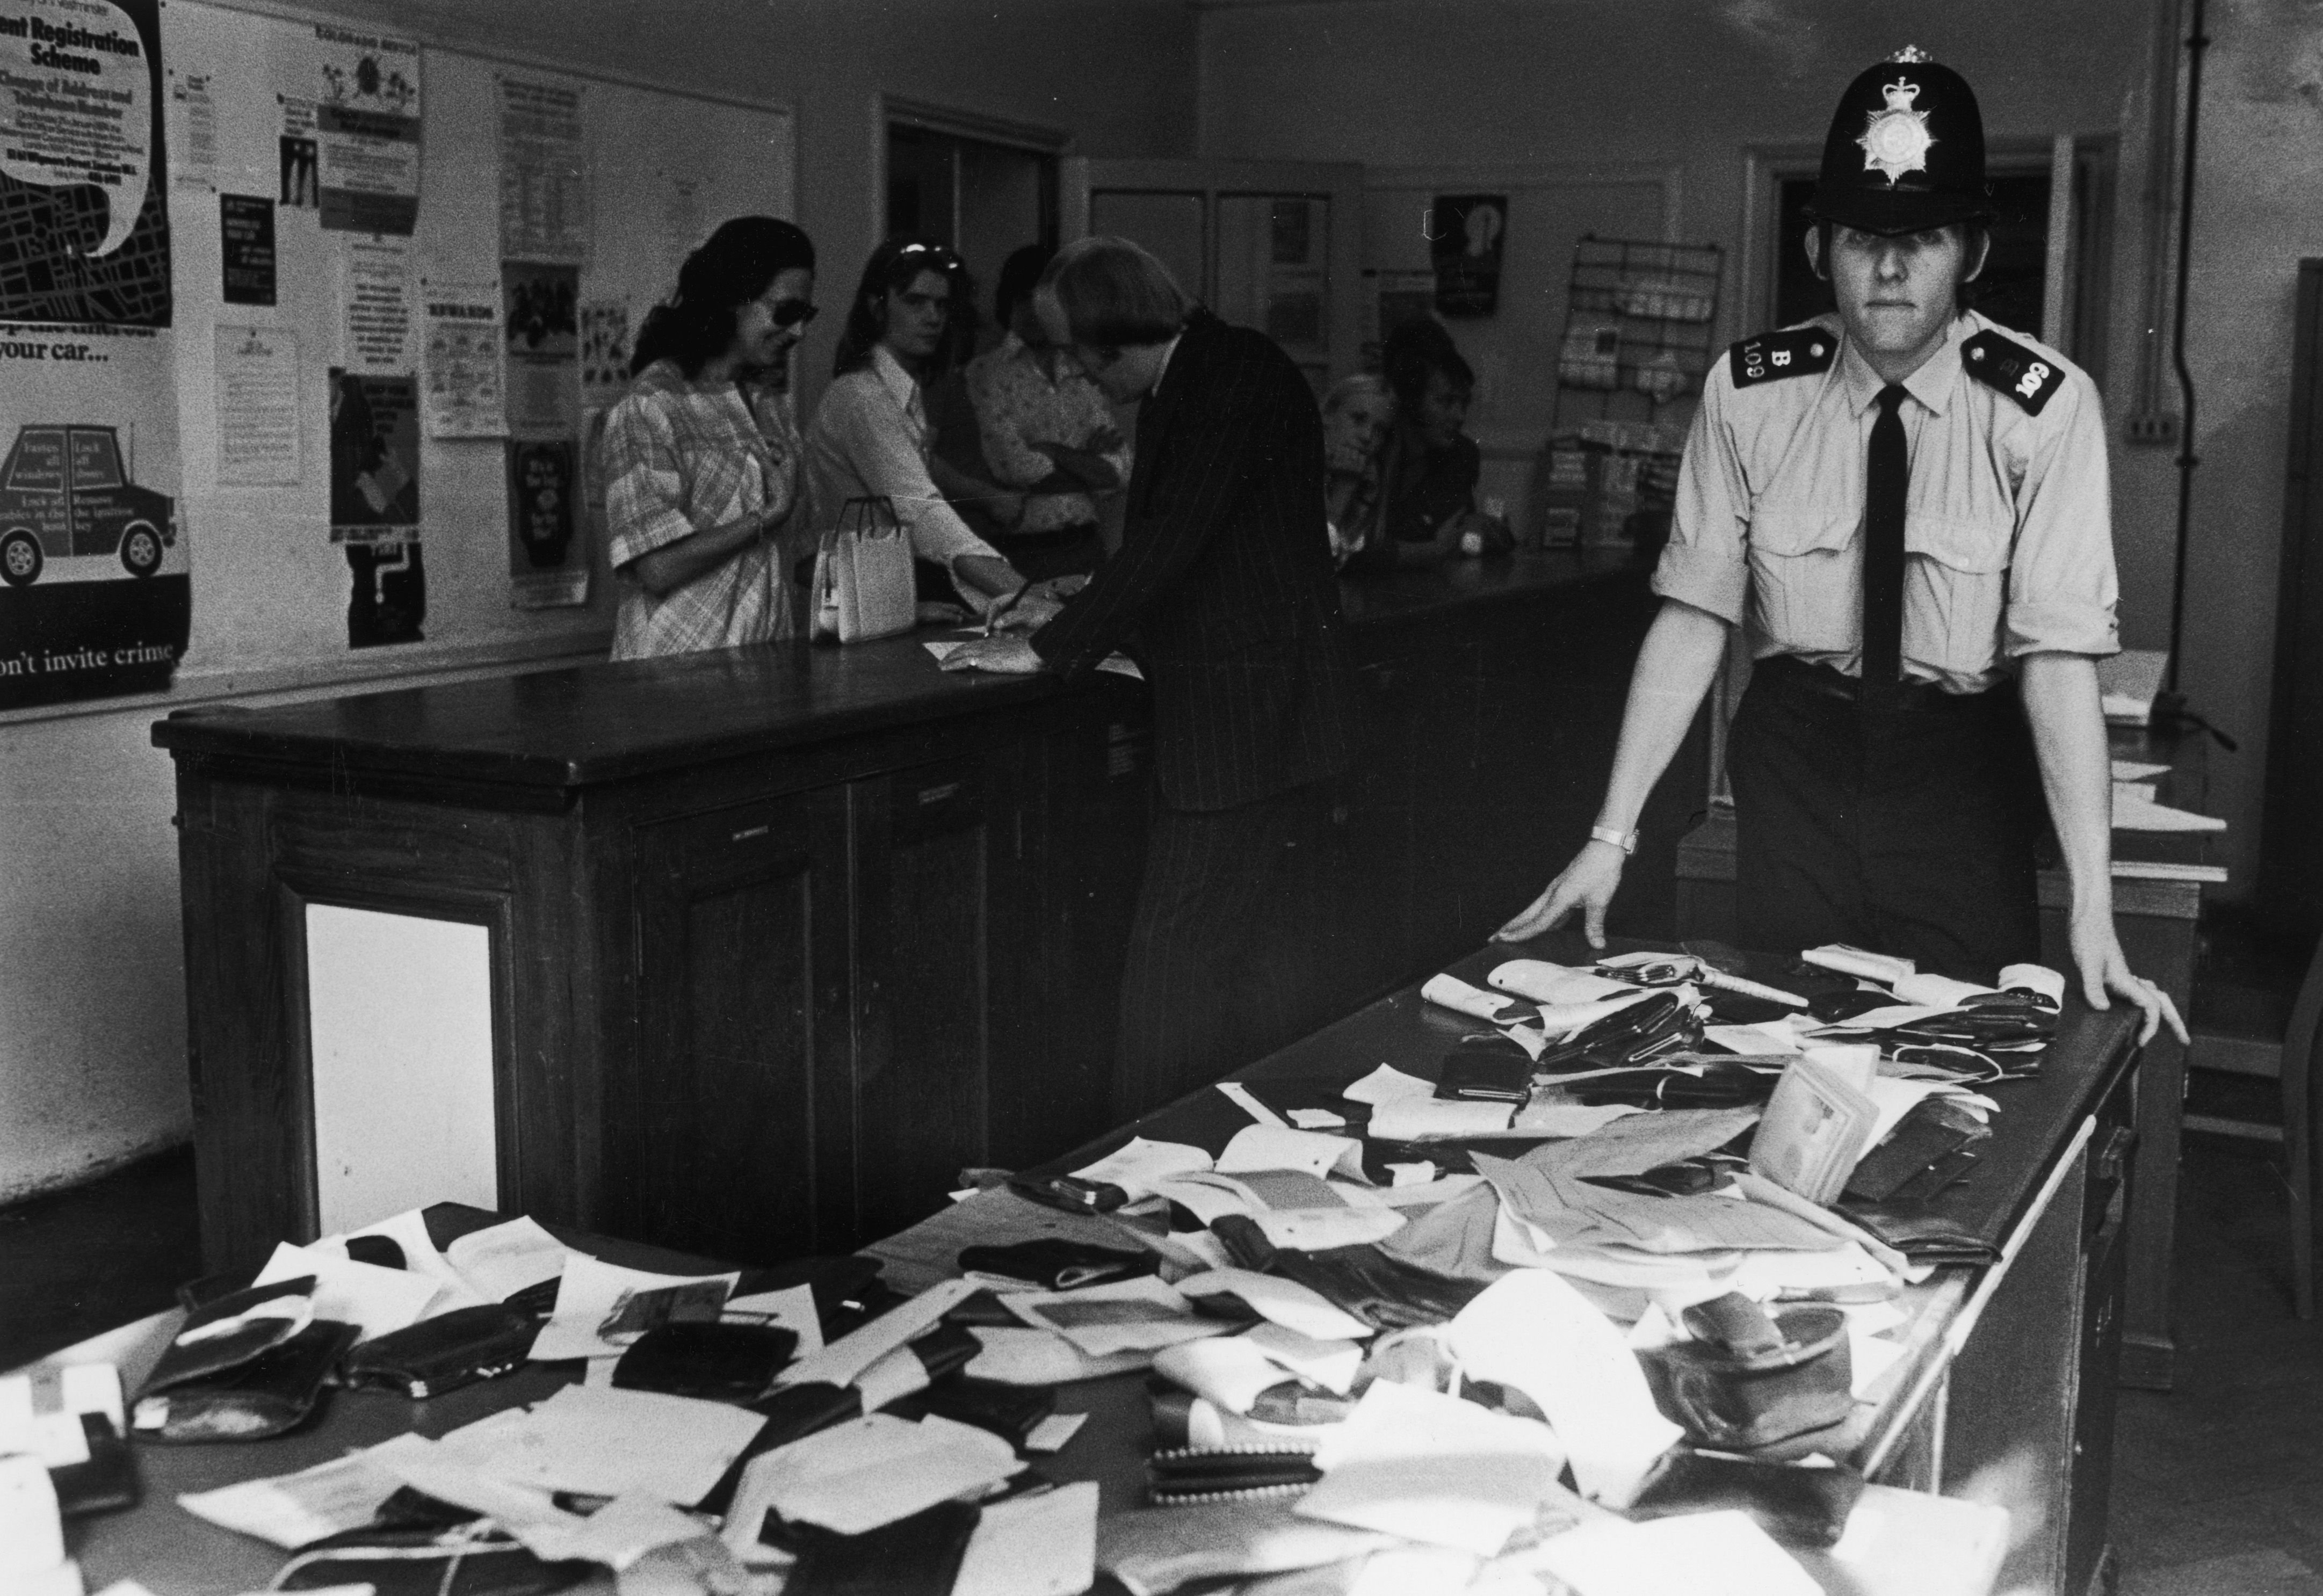 British policeman with a desk full of wallets